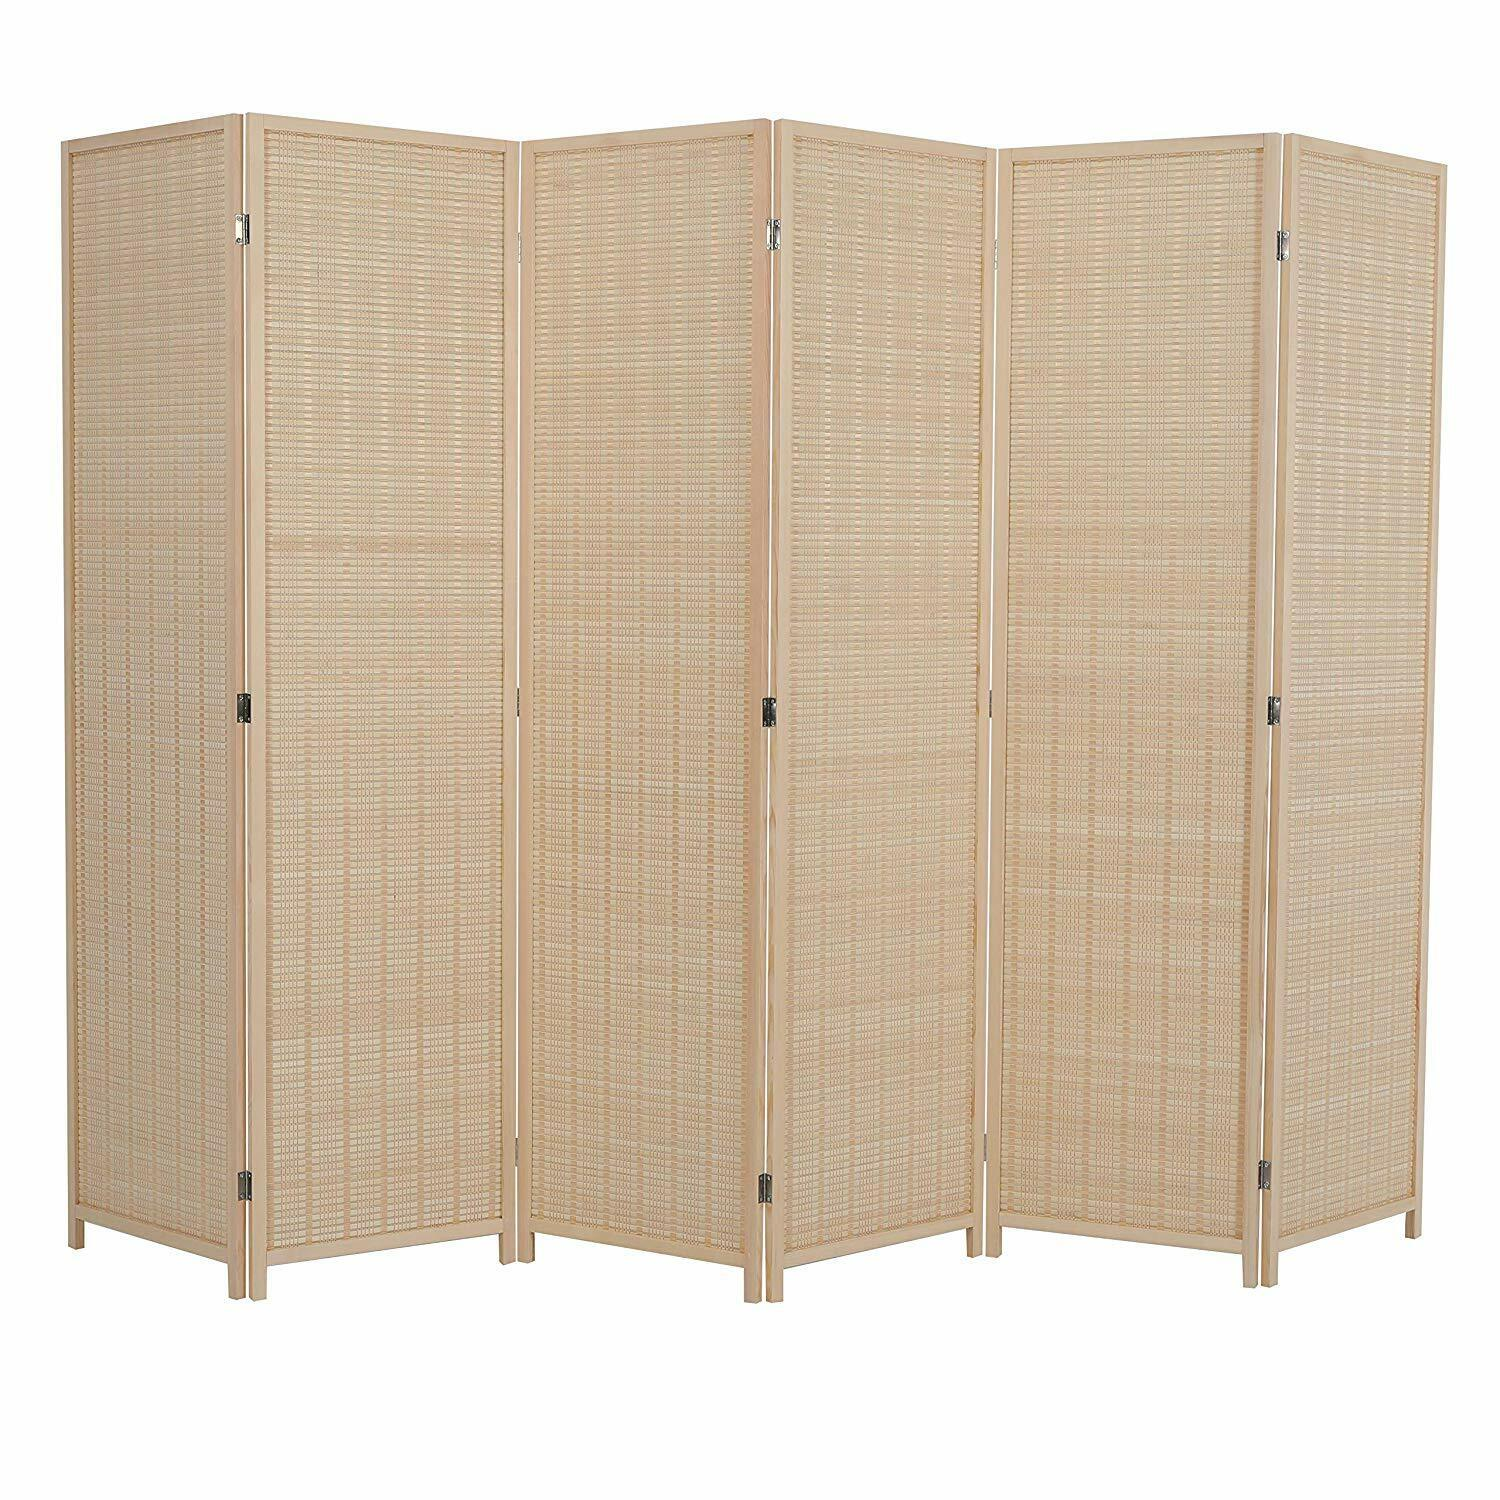 ALPHA HOME 6 Panel Bamboo Room Dividers, 6 ft. Tall Freestan